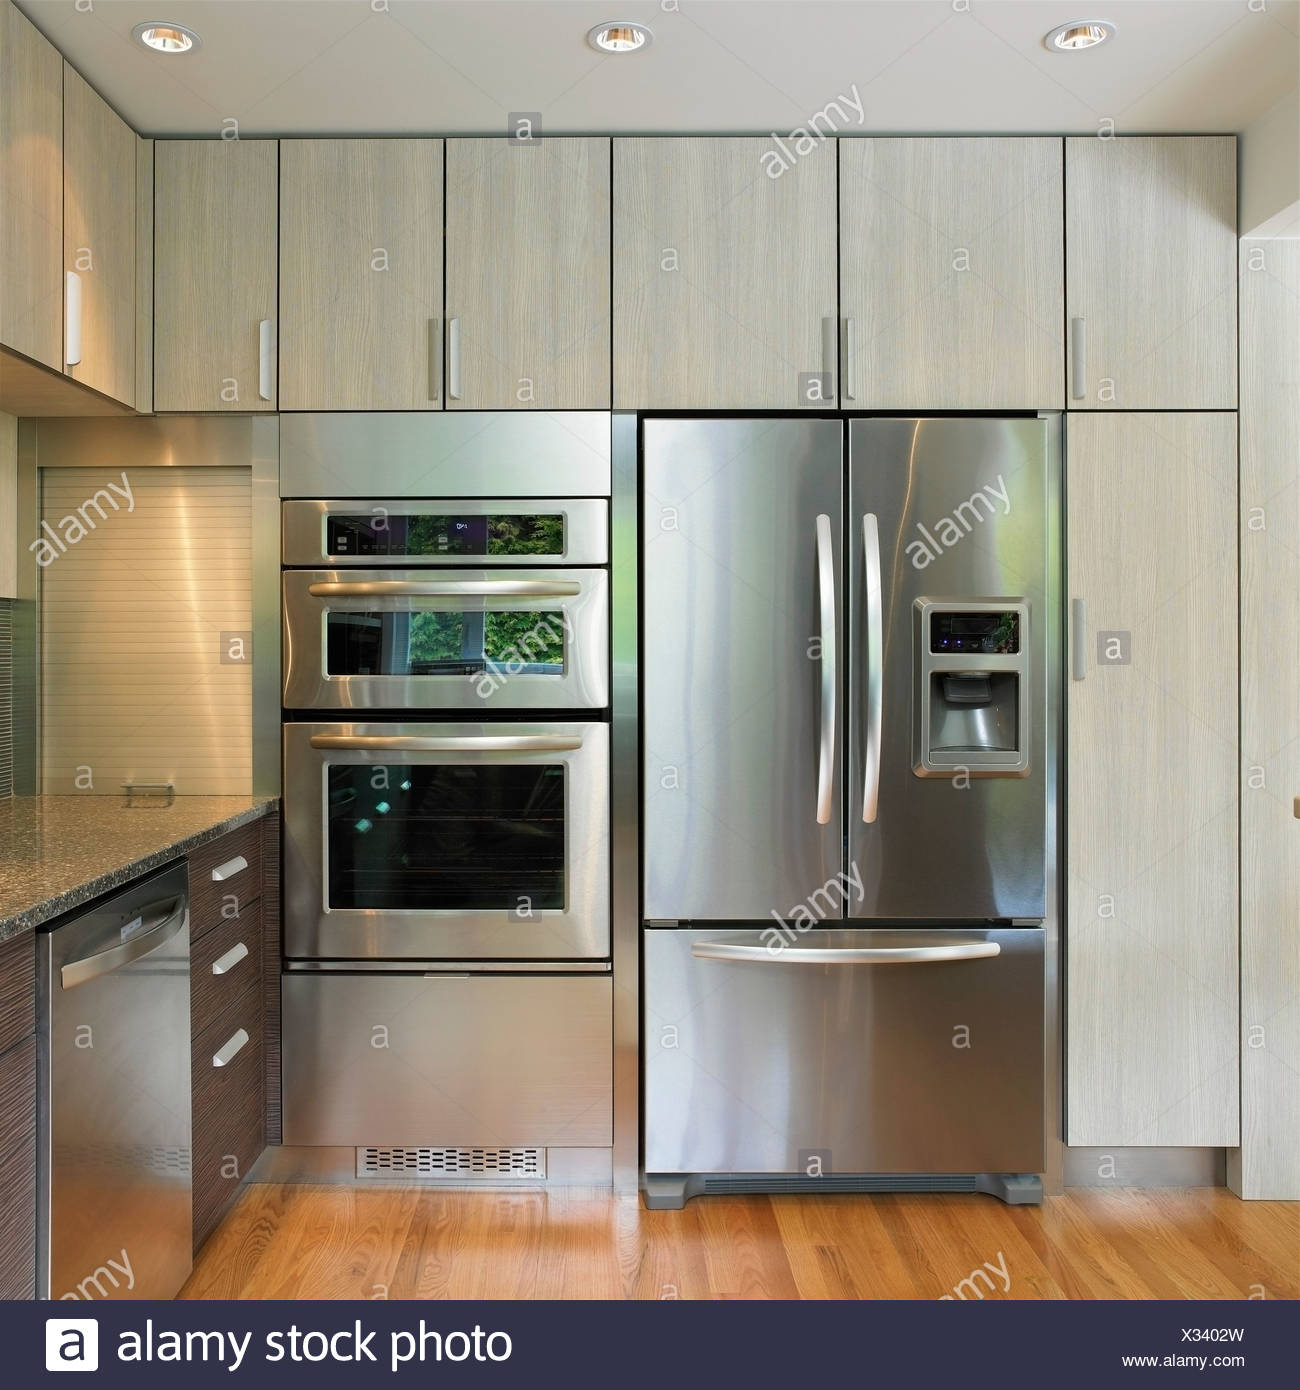 Kitchen Wall Featuring Built-In Fridge And Wall Oven ...